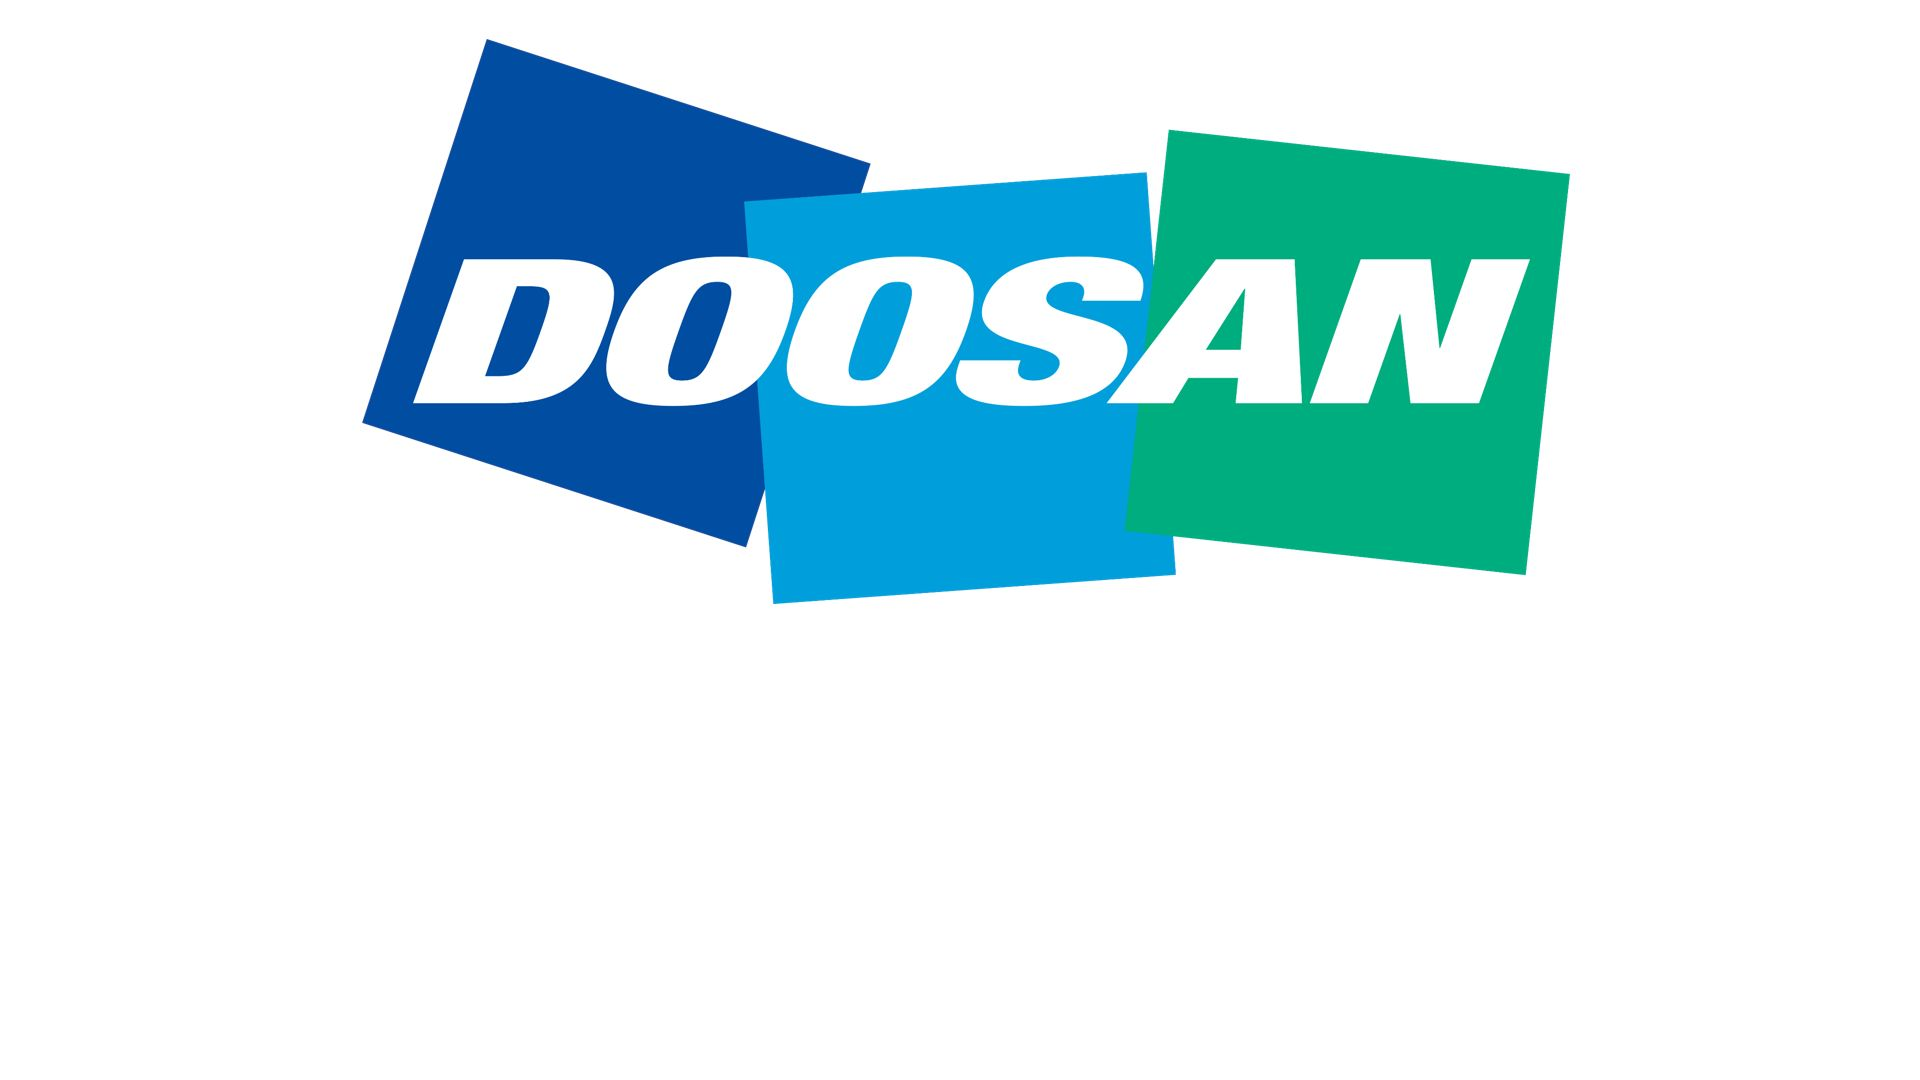 For the second time, Doosan decided to choose Hungary - VIDEO REPORT